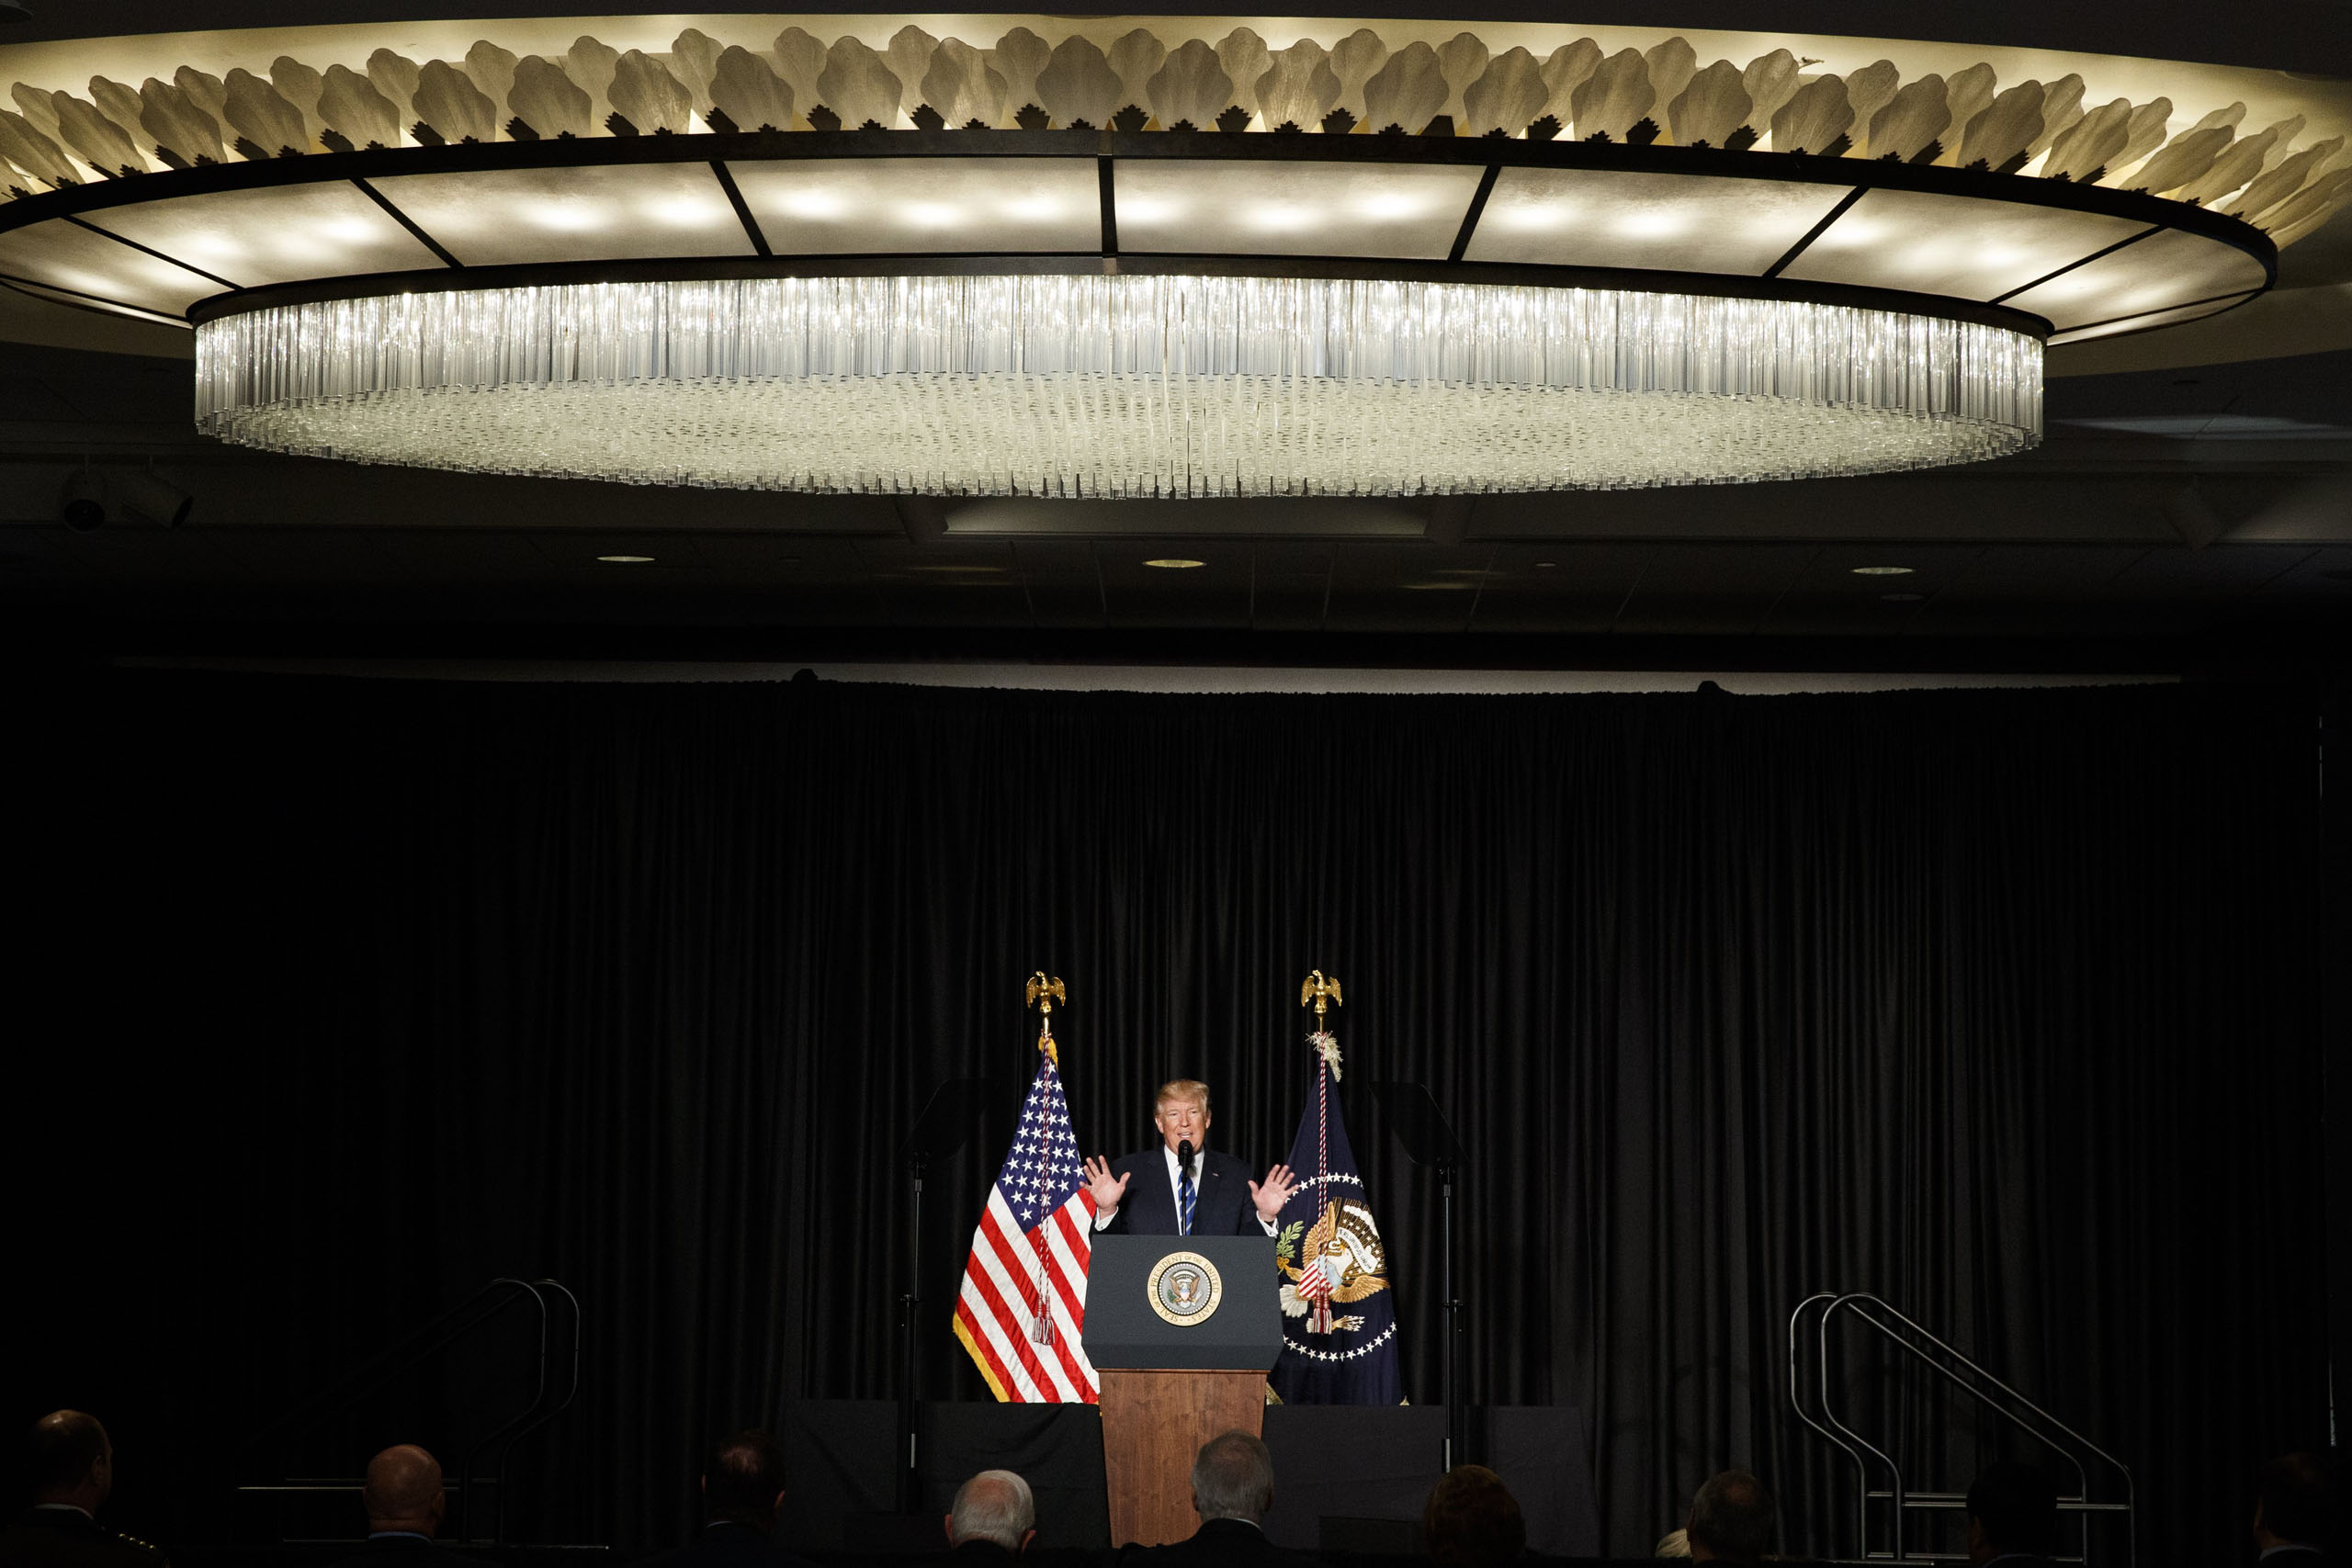 President Donald Trump speaks to the Major County Sheriffs' Association and Major Cities Chiefs Association in Washington, on Feb. 8, 2017.